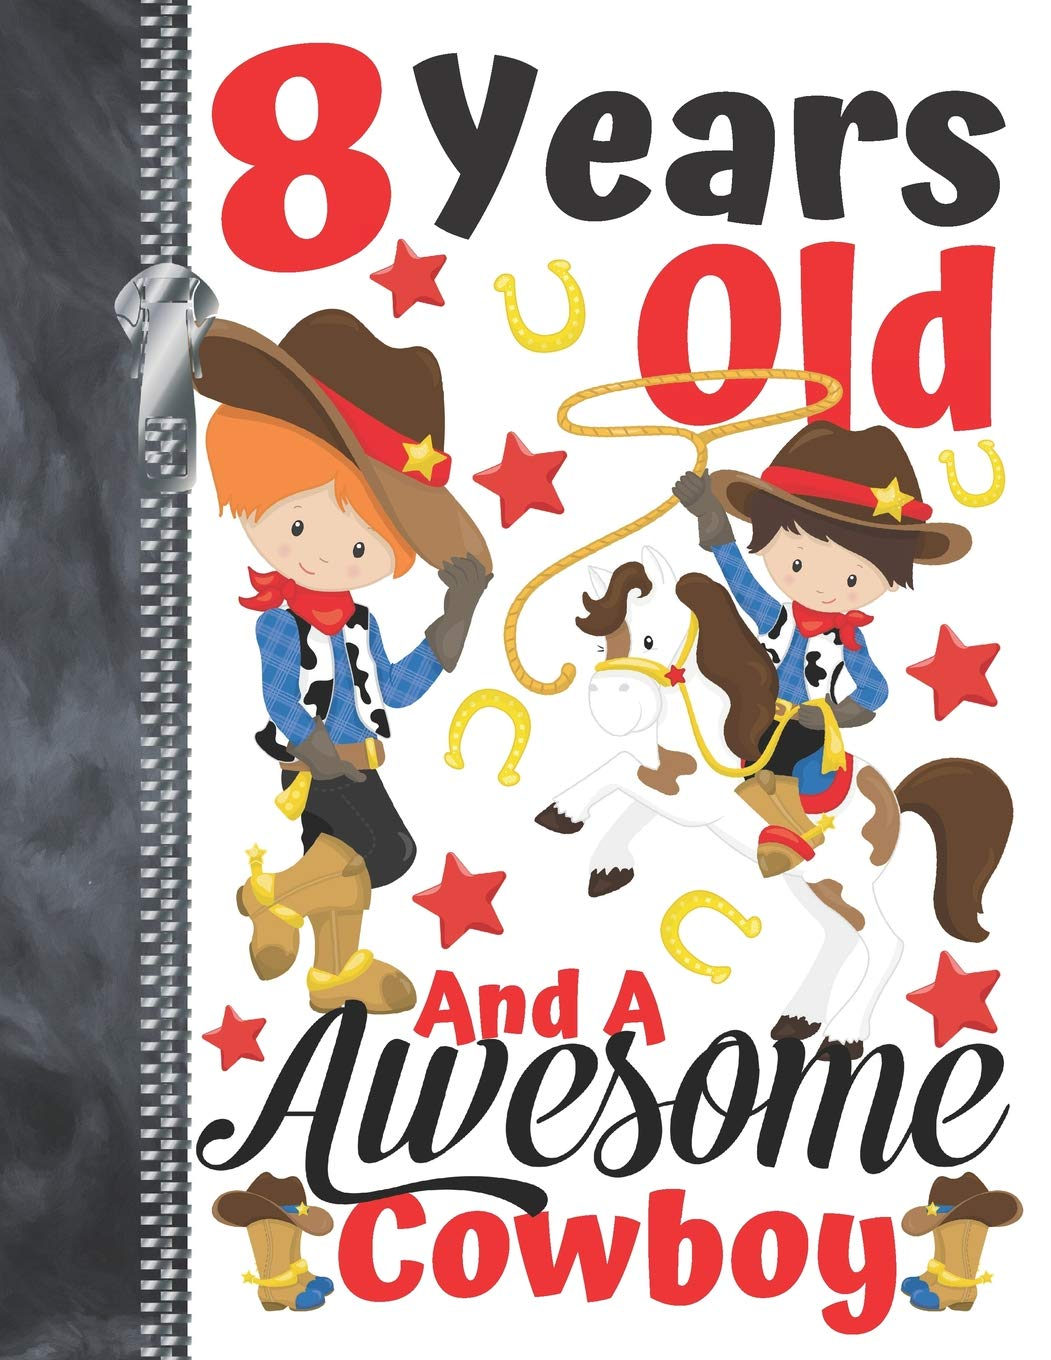 8 Years Old And A Awesome Cowboy: Country Western Doodling.